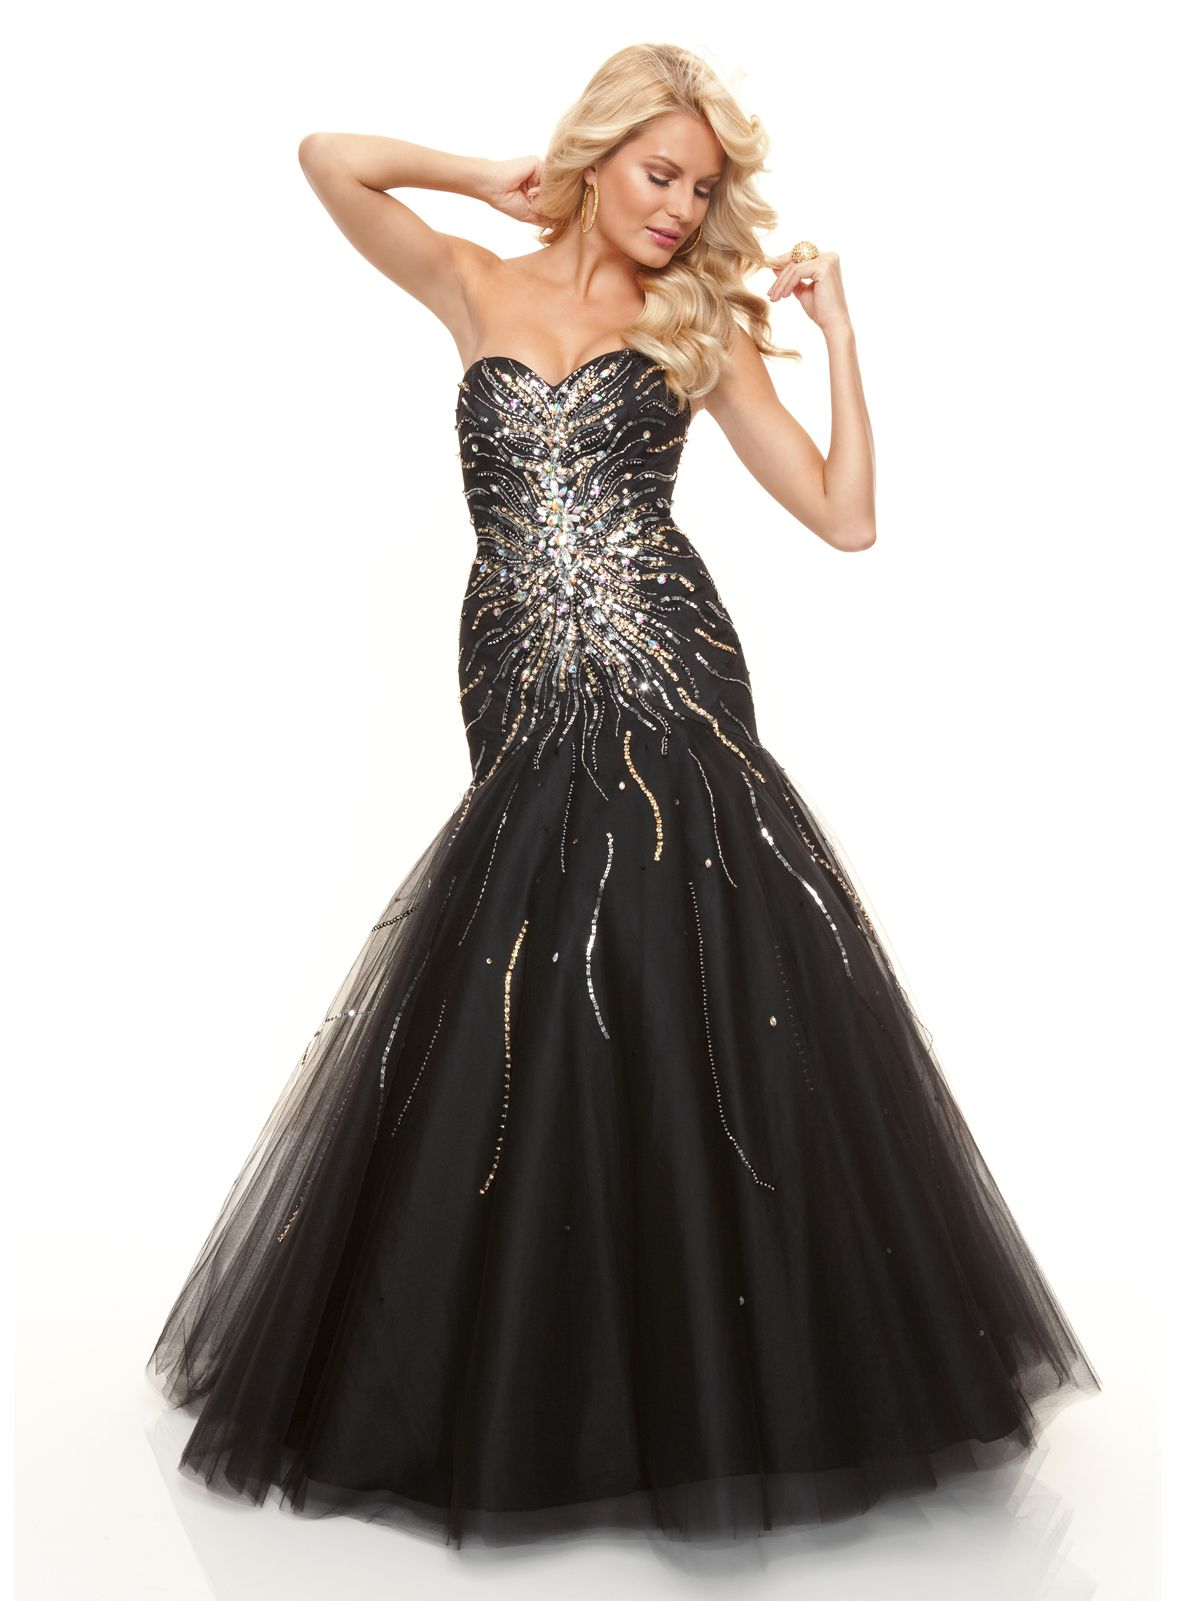 05d81980c9 Size 10 Black In StockDazzling prom gown that will make you shine on your  prom night. This sparkly mermaid Mori Lee Prom Dress 93031 displays a  sweetheart ...